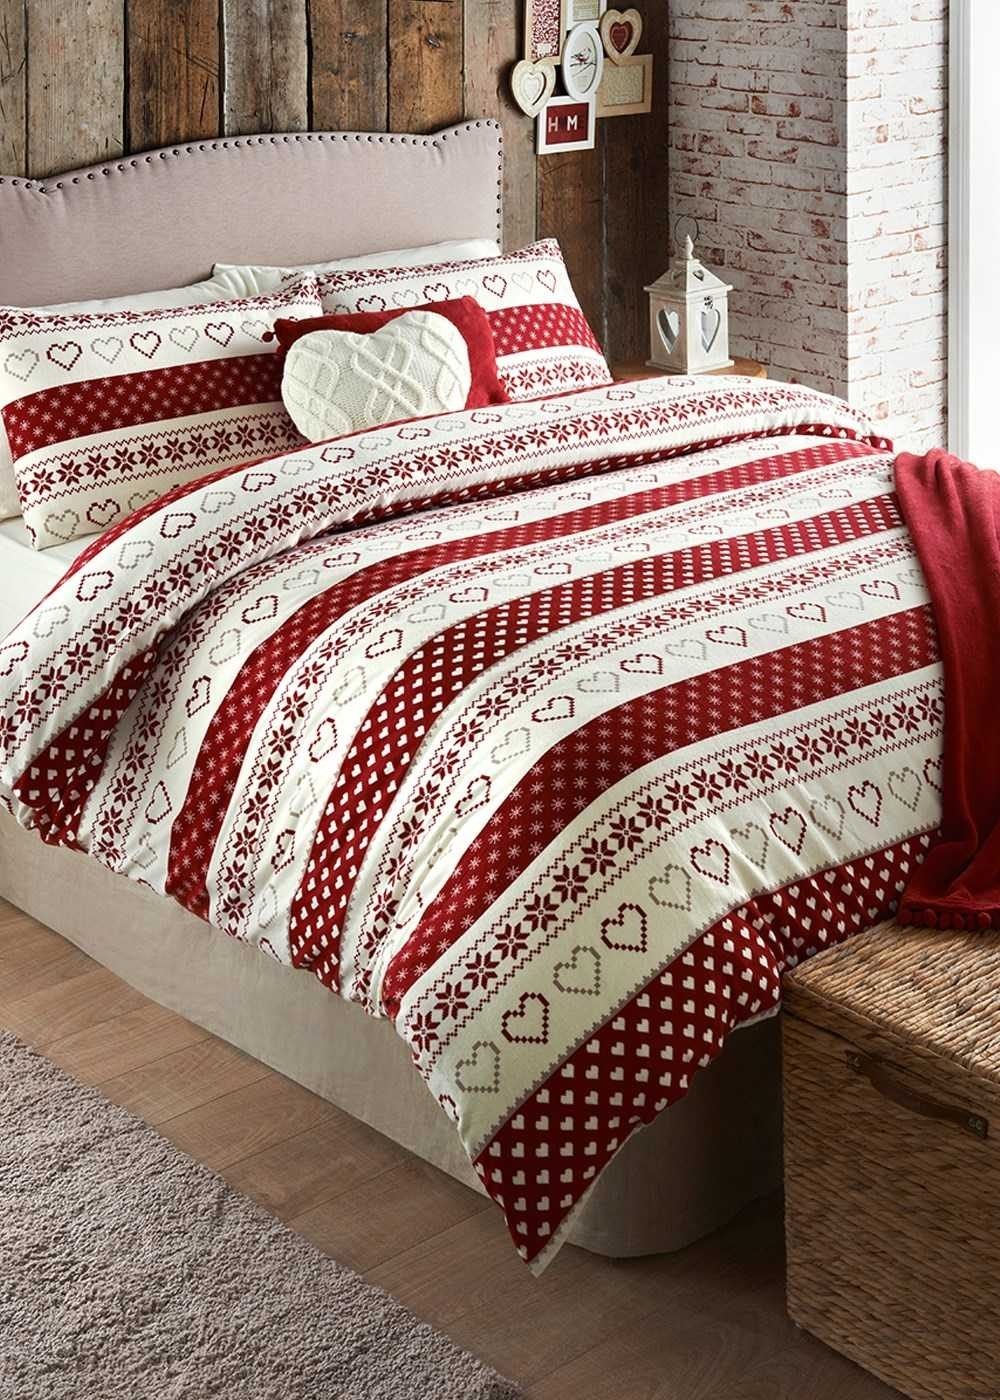 Matalan Duvet Sets – Cotton Geometric Printed Duvet Cover ( Thread Regarding Recent Matalan Canvas Wall Art (View 12 of 15)